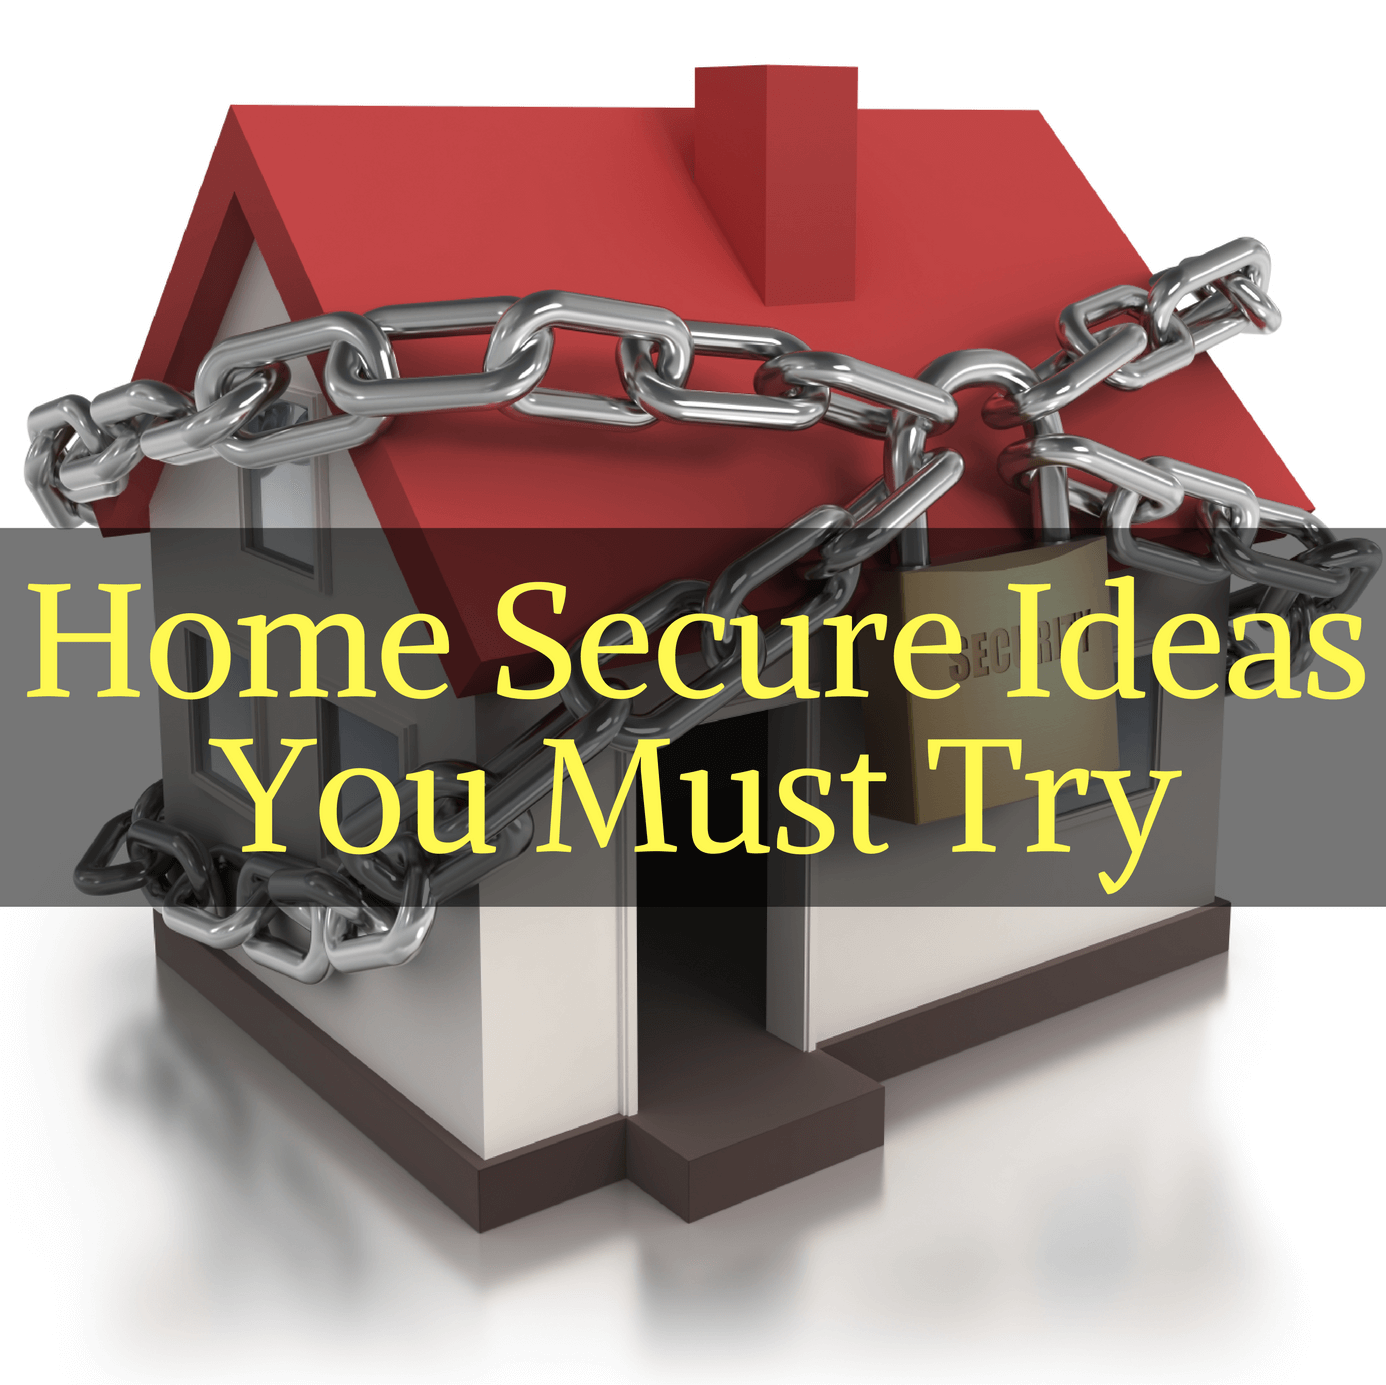 Home Secure Ideas You Must Try